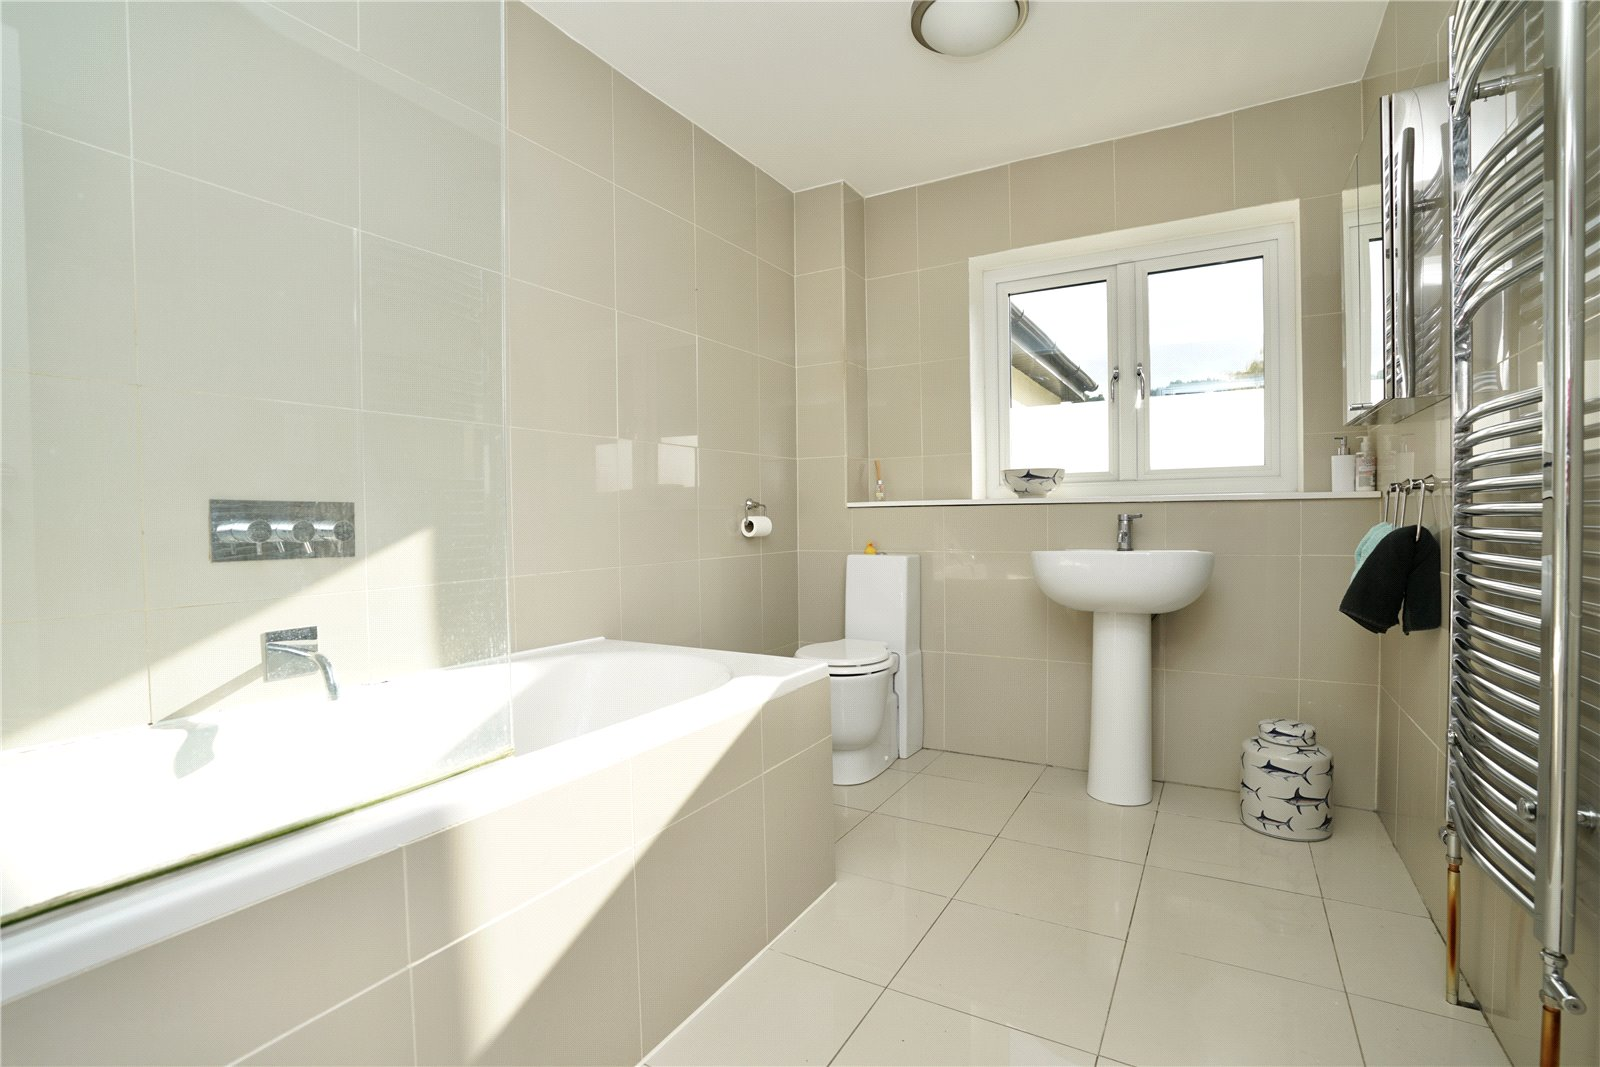 4 bed house for sale in Eaton Socon 12